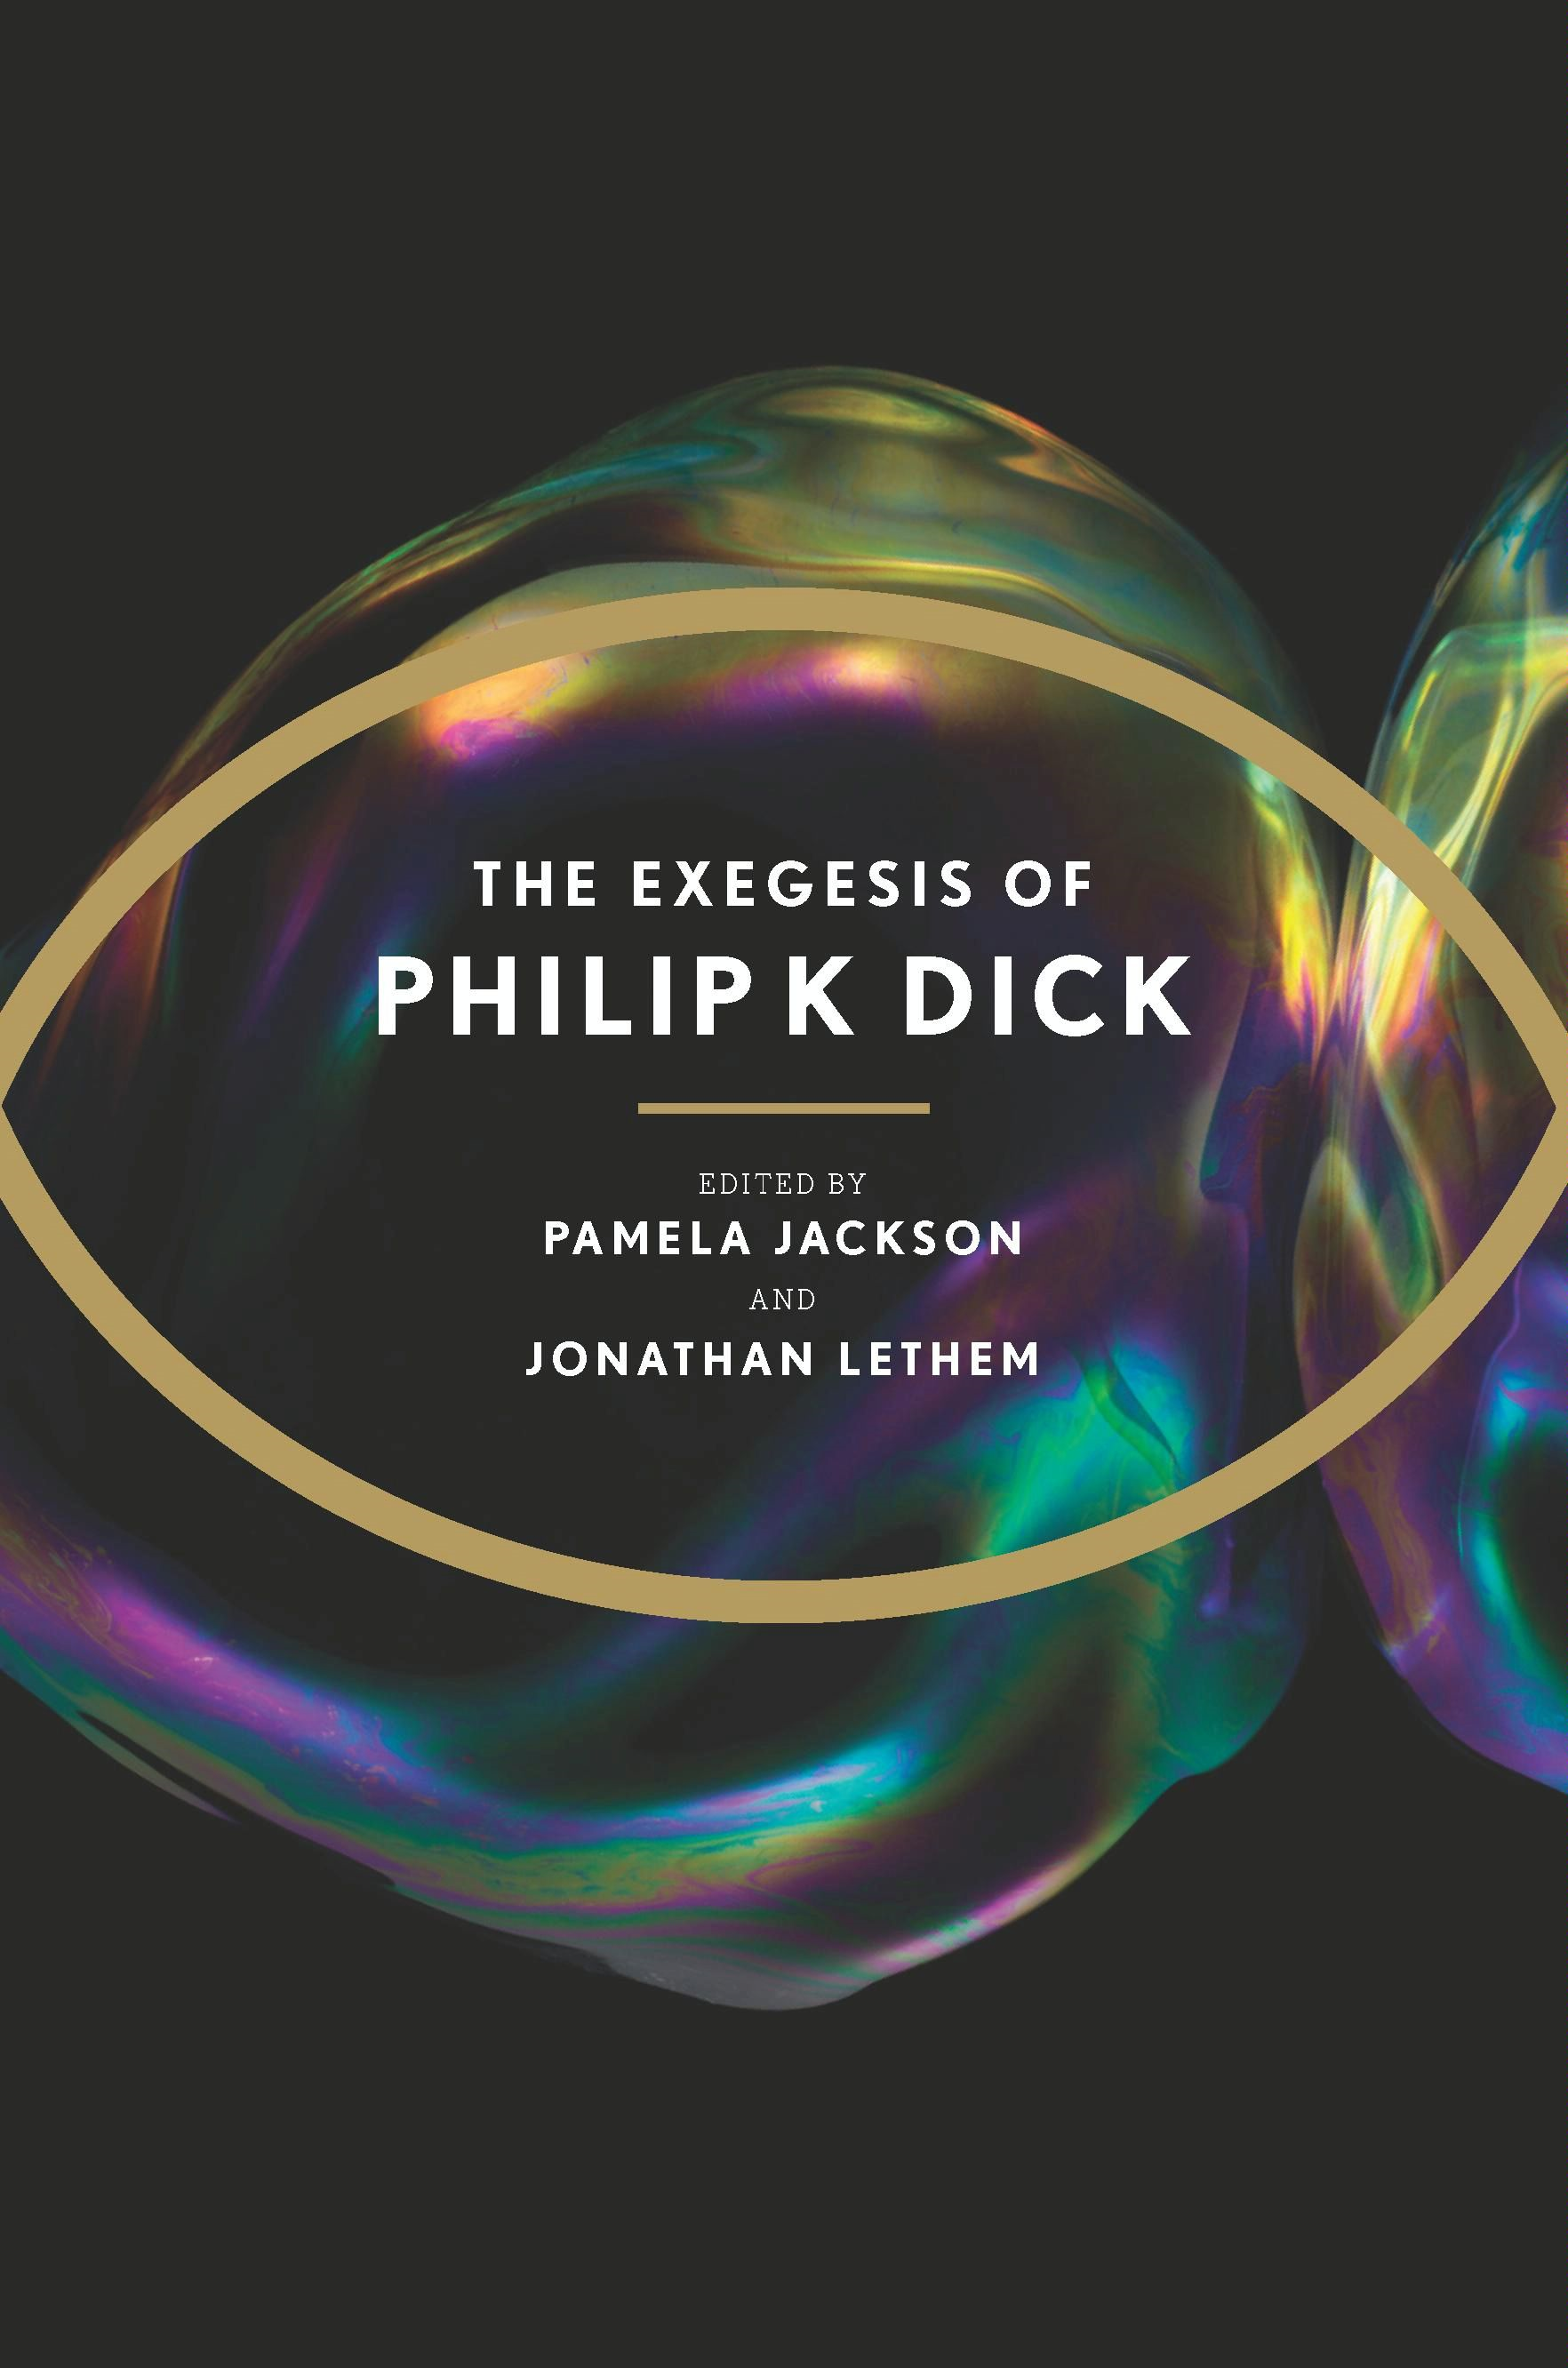 The Exegesis of Philip K. Dick By: Philip K. Dick